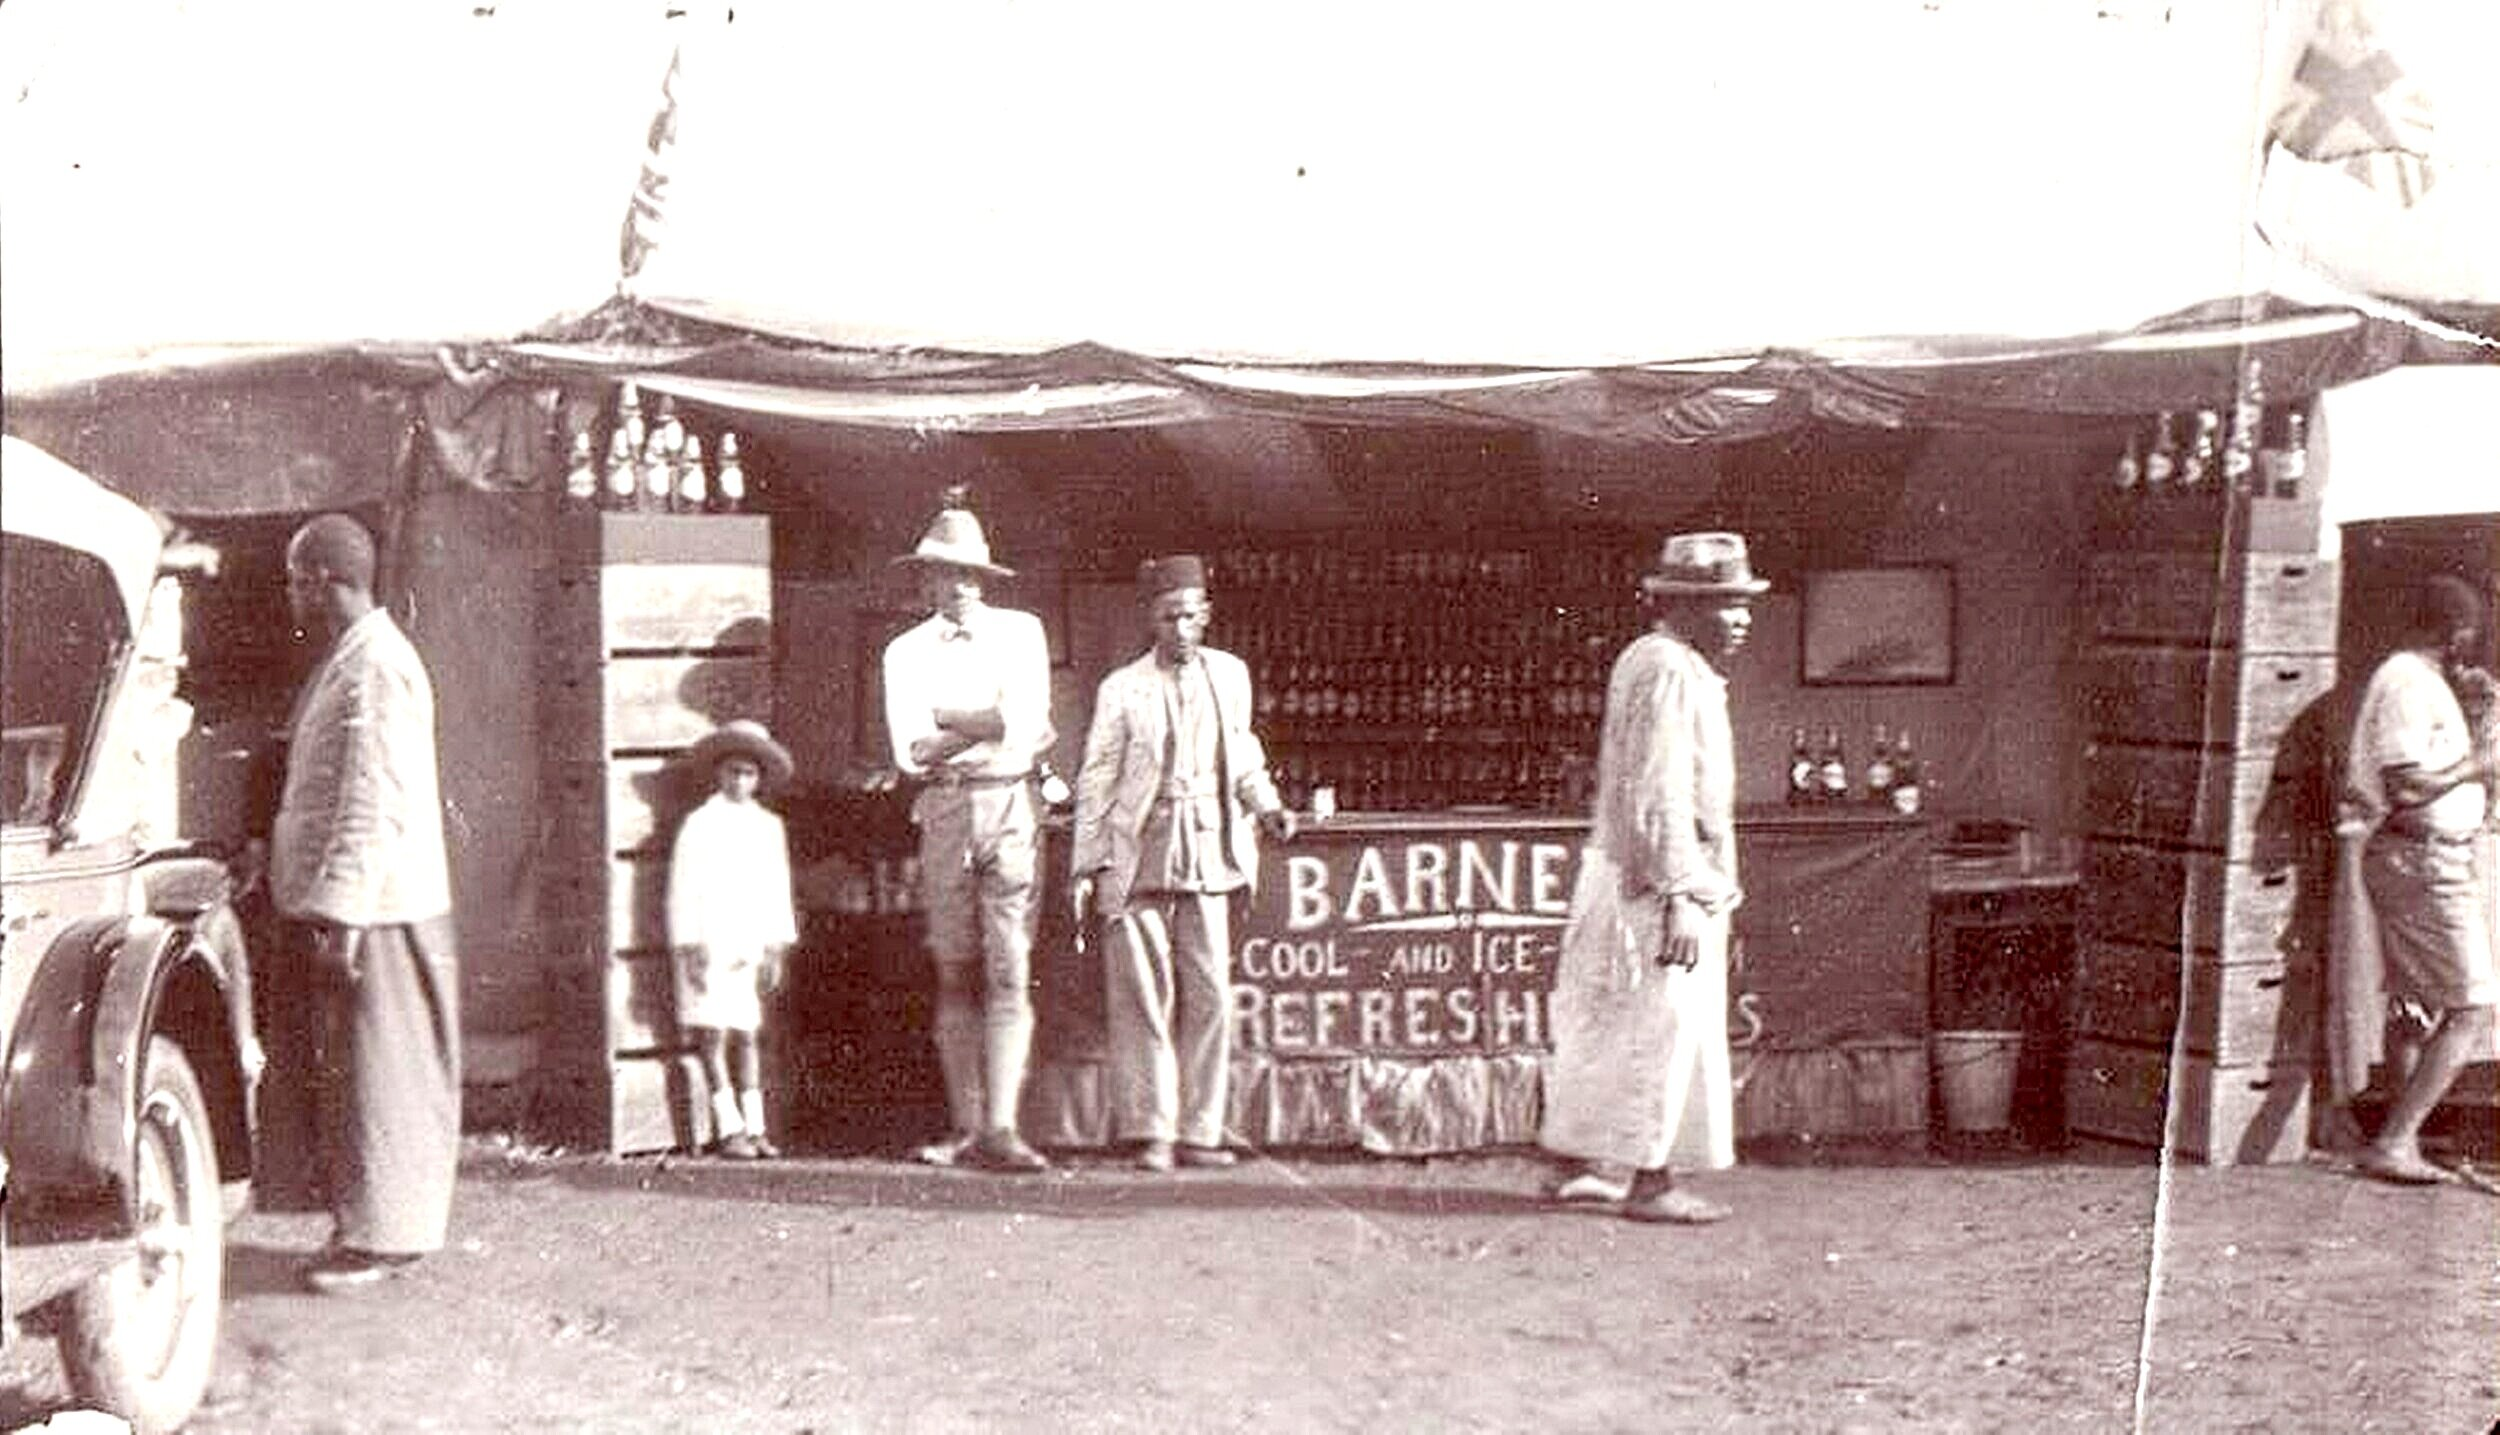 The history of Goans in Uganda dates back to the 1800s. The prominent businessman A. Figueiredo had arrived in 1897 and settled in Mengo where he established a business by 1900. Goan businesses concentrated on retailing, tailoring, and rickshaw hire. Large numbers of Goans worked for the British administration. Seen above Barnet Soda drinks Company circa 1918, owned by the Lobo family. (picture courtesy and copyright of Jude John Lobo, loaned to the Oral Histories of British-Goans project.)